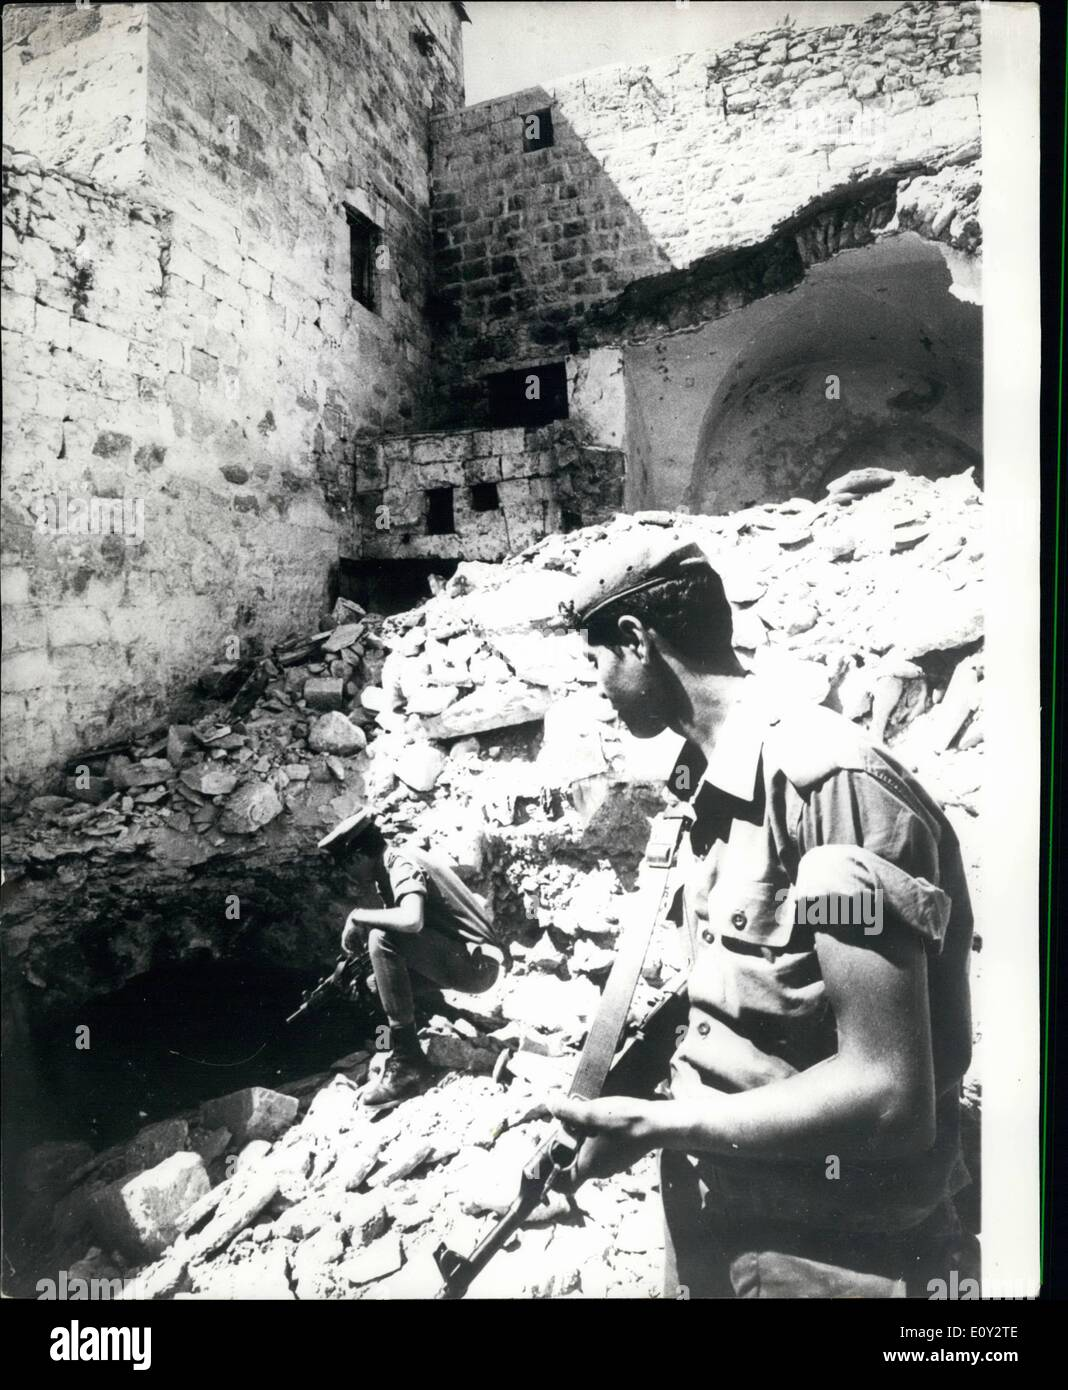 Sep. 09, 1968 - House Demolished In Nablus After Finding Of Sabotage Material Nablus, know as a centre of terrorism and El-Fath - Stock Image